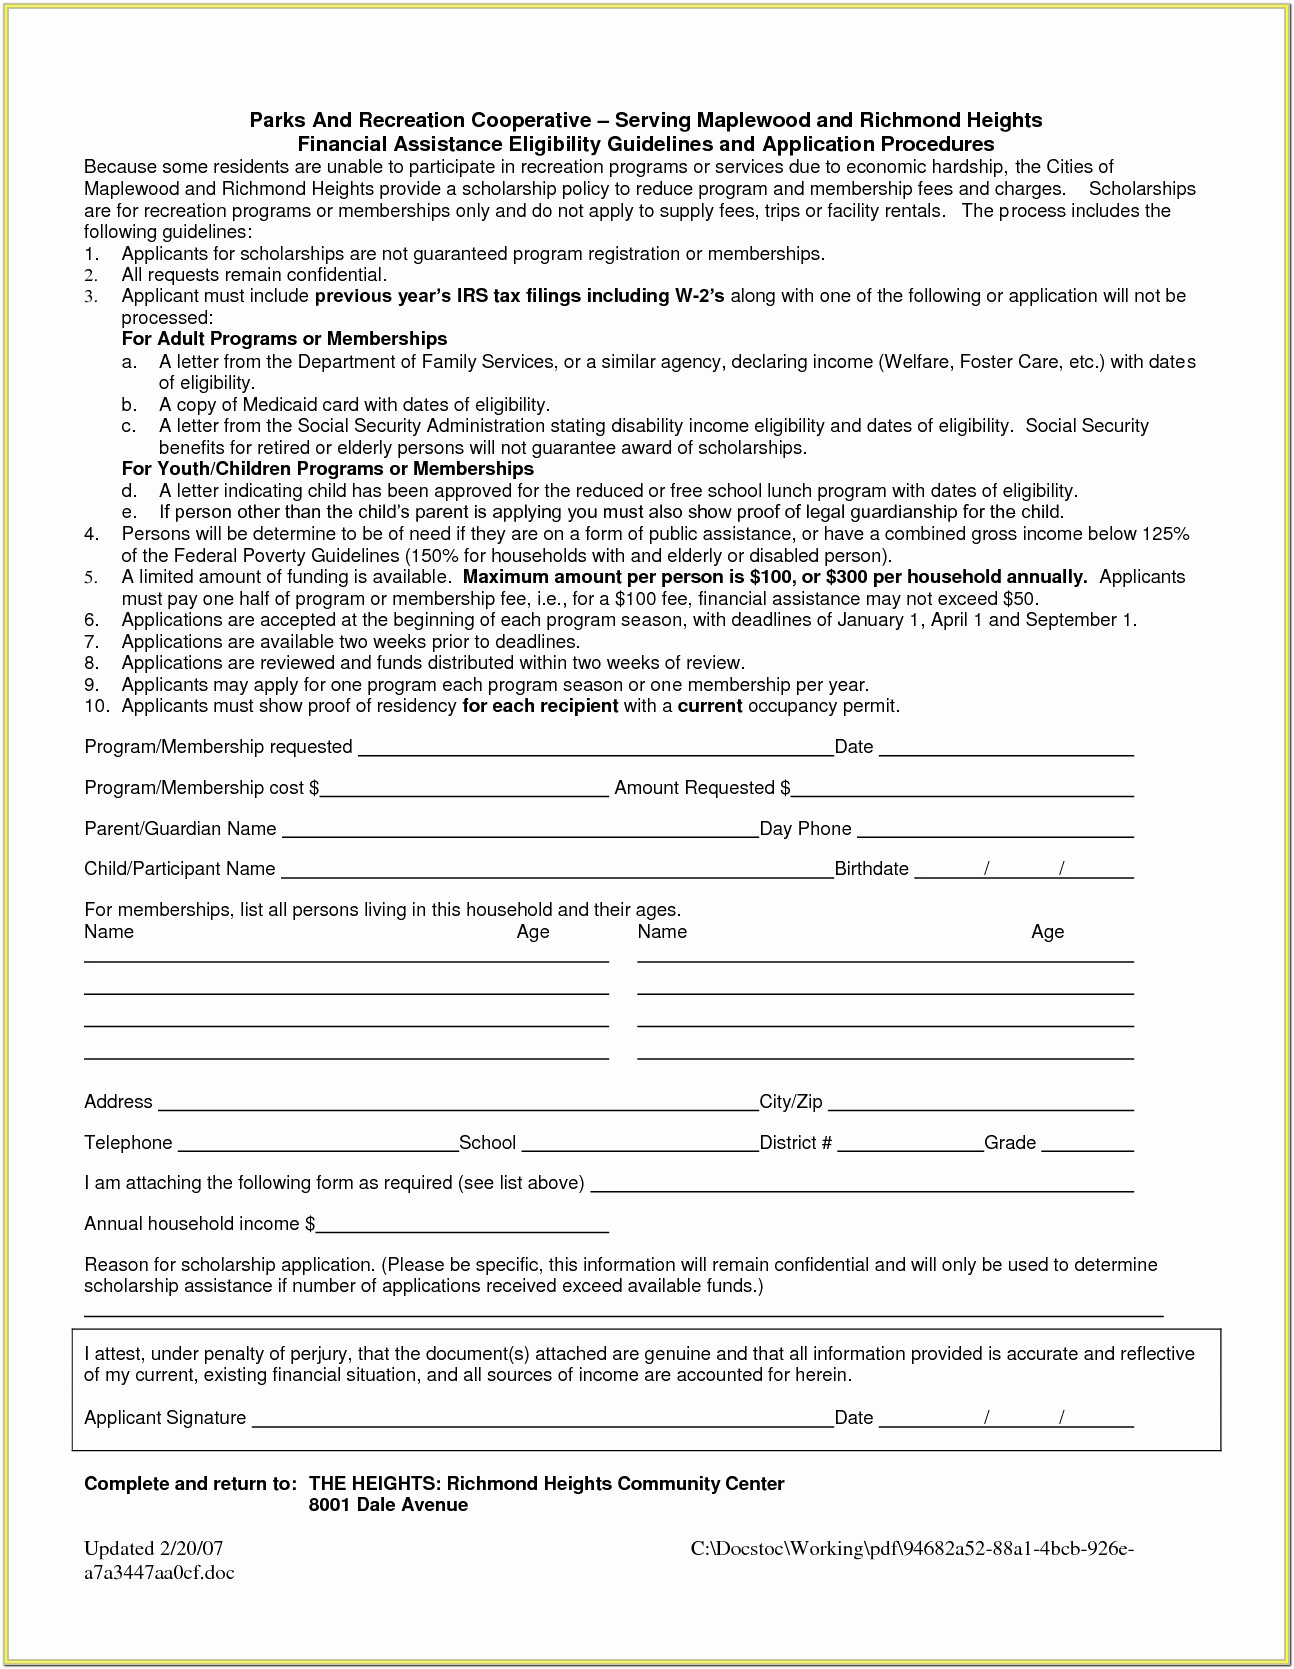 Temporary Legal Guardianship Form Florida